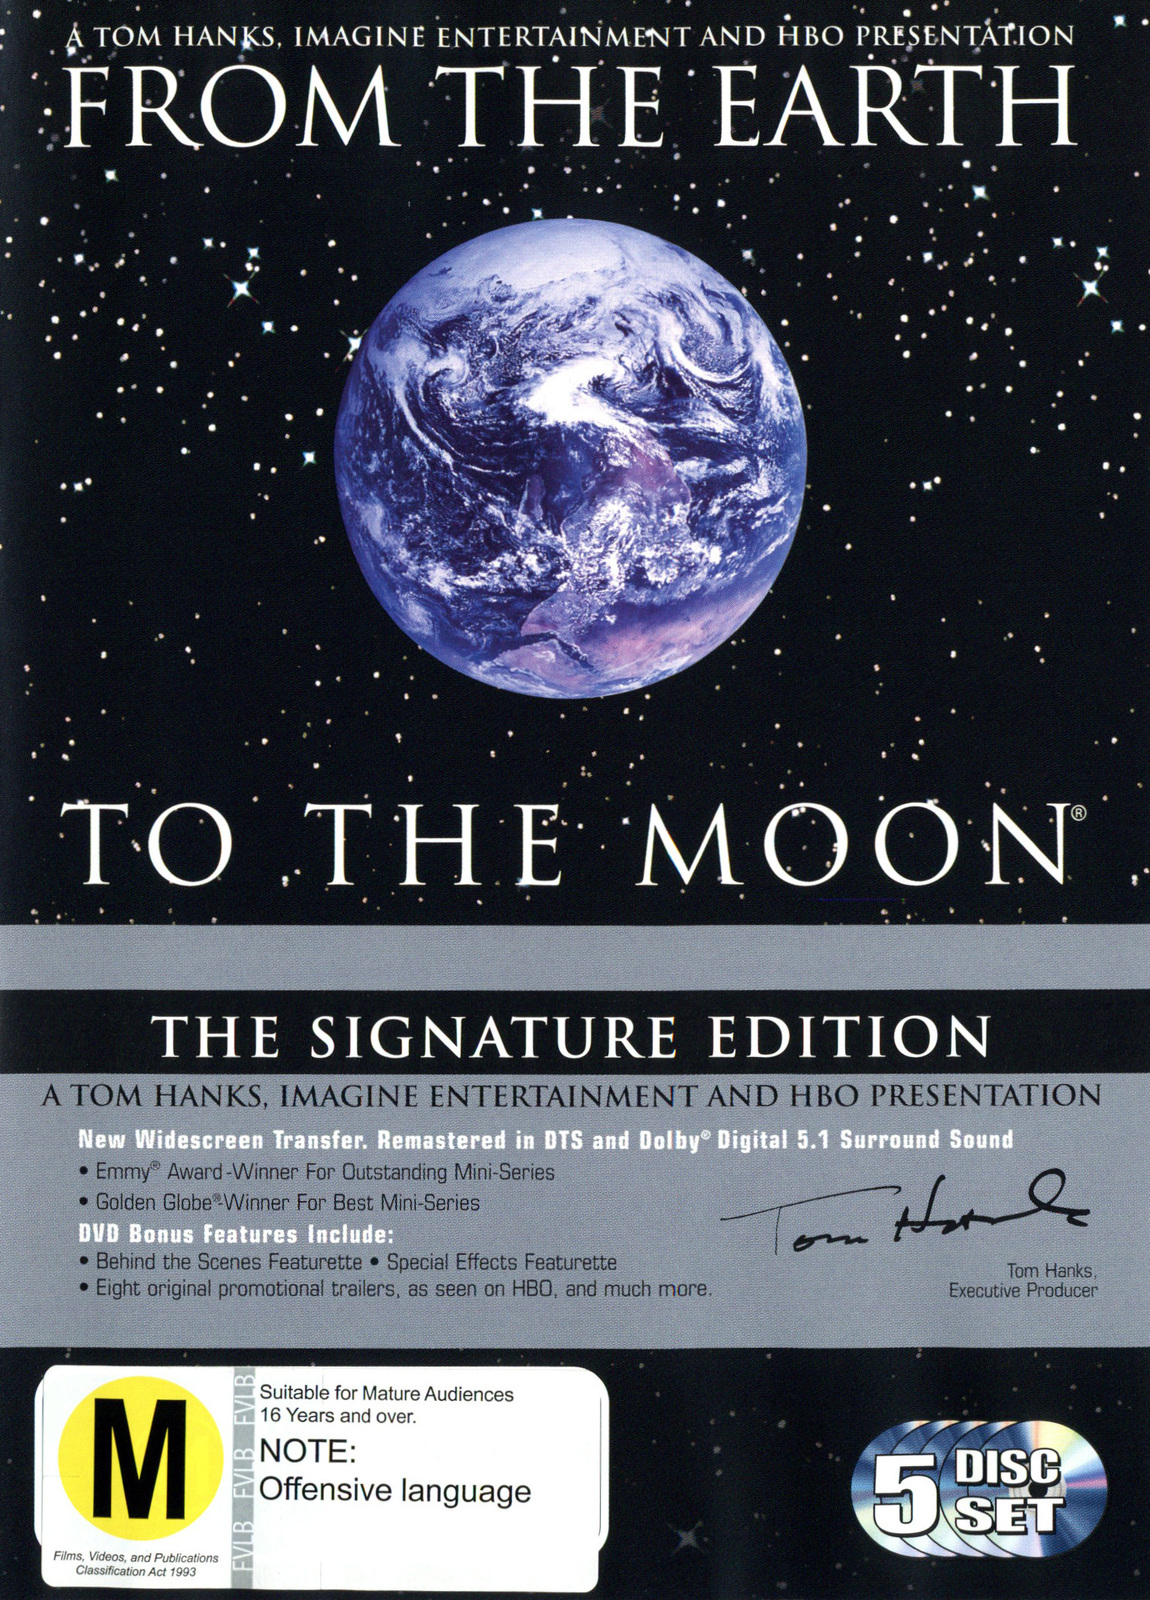 From The Earth To The Moon - The Signature Edition on DVD image